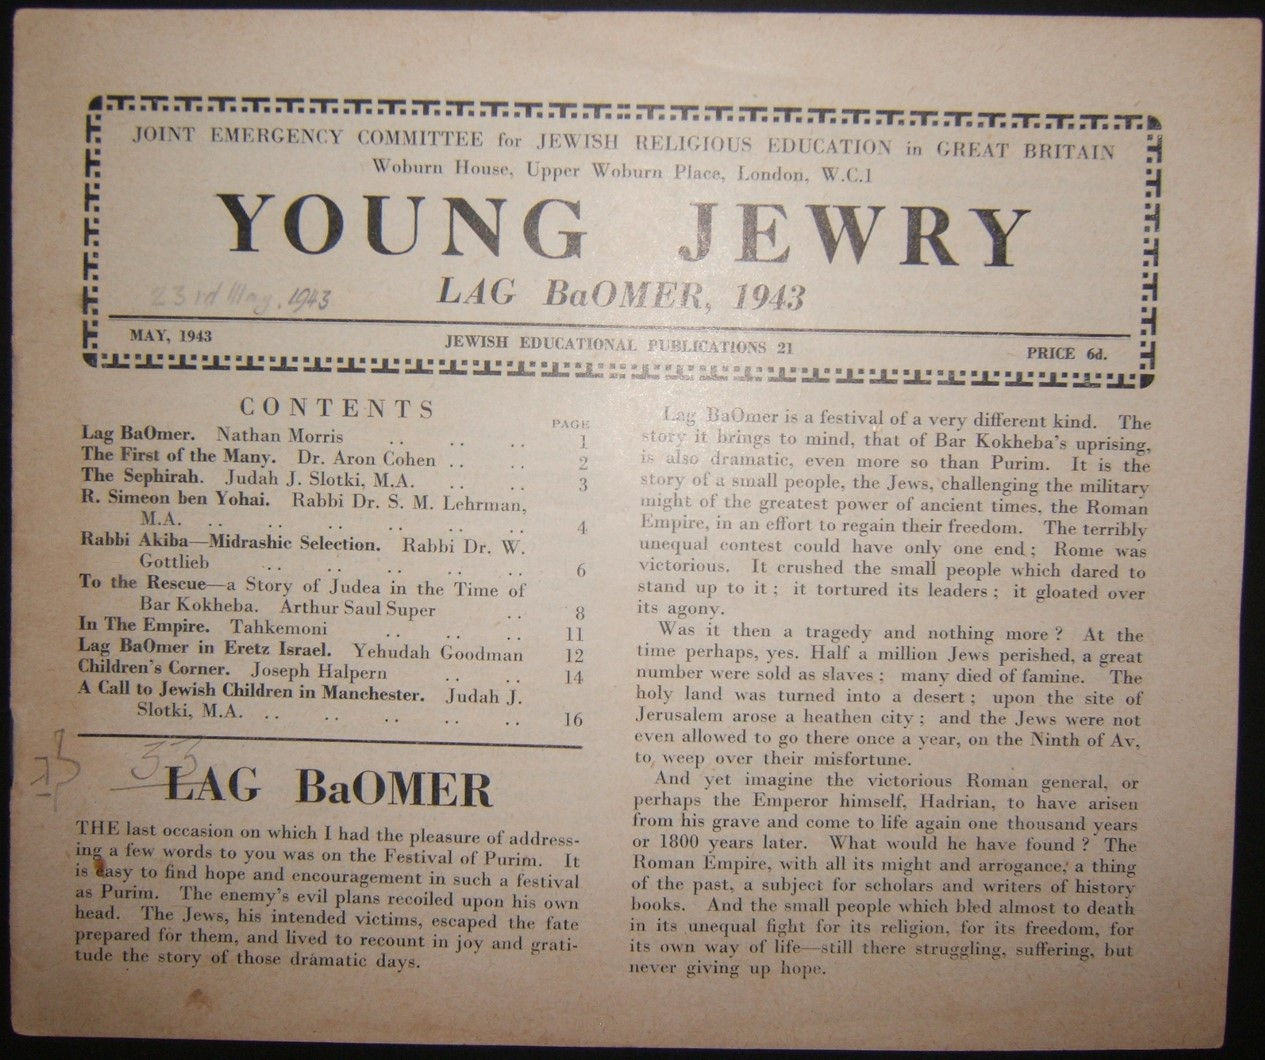 British Holocaust era Orthodox Jewish Young Jewry evacuee's periodical #21, 1943